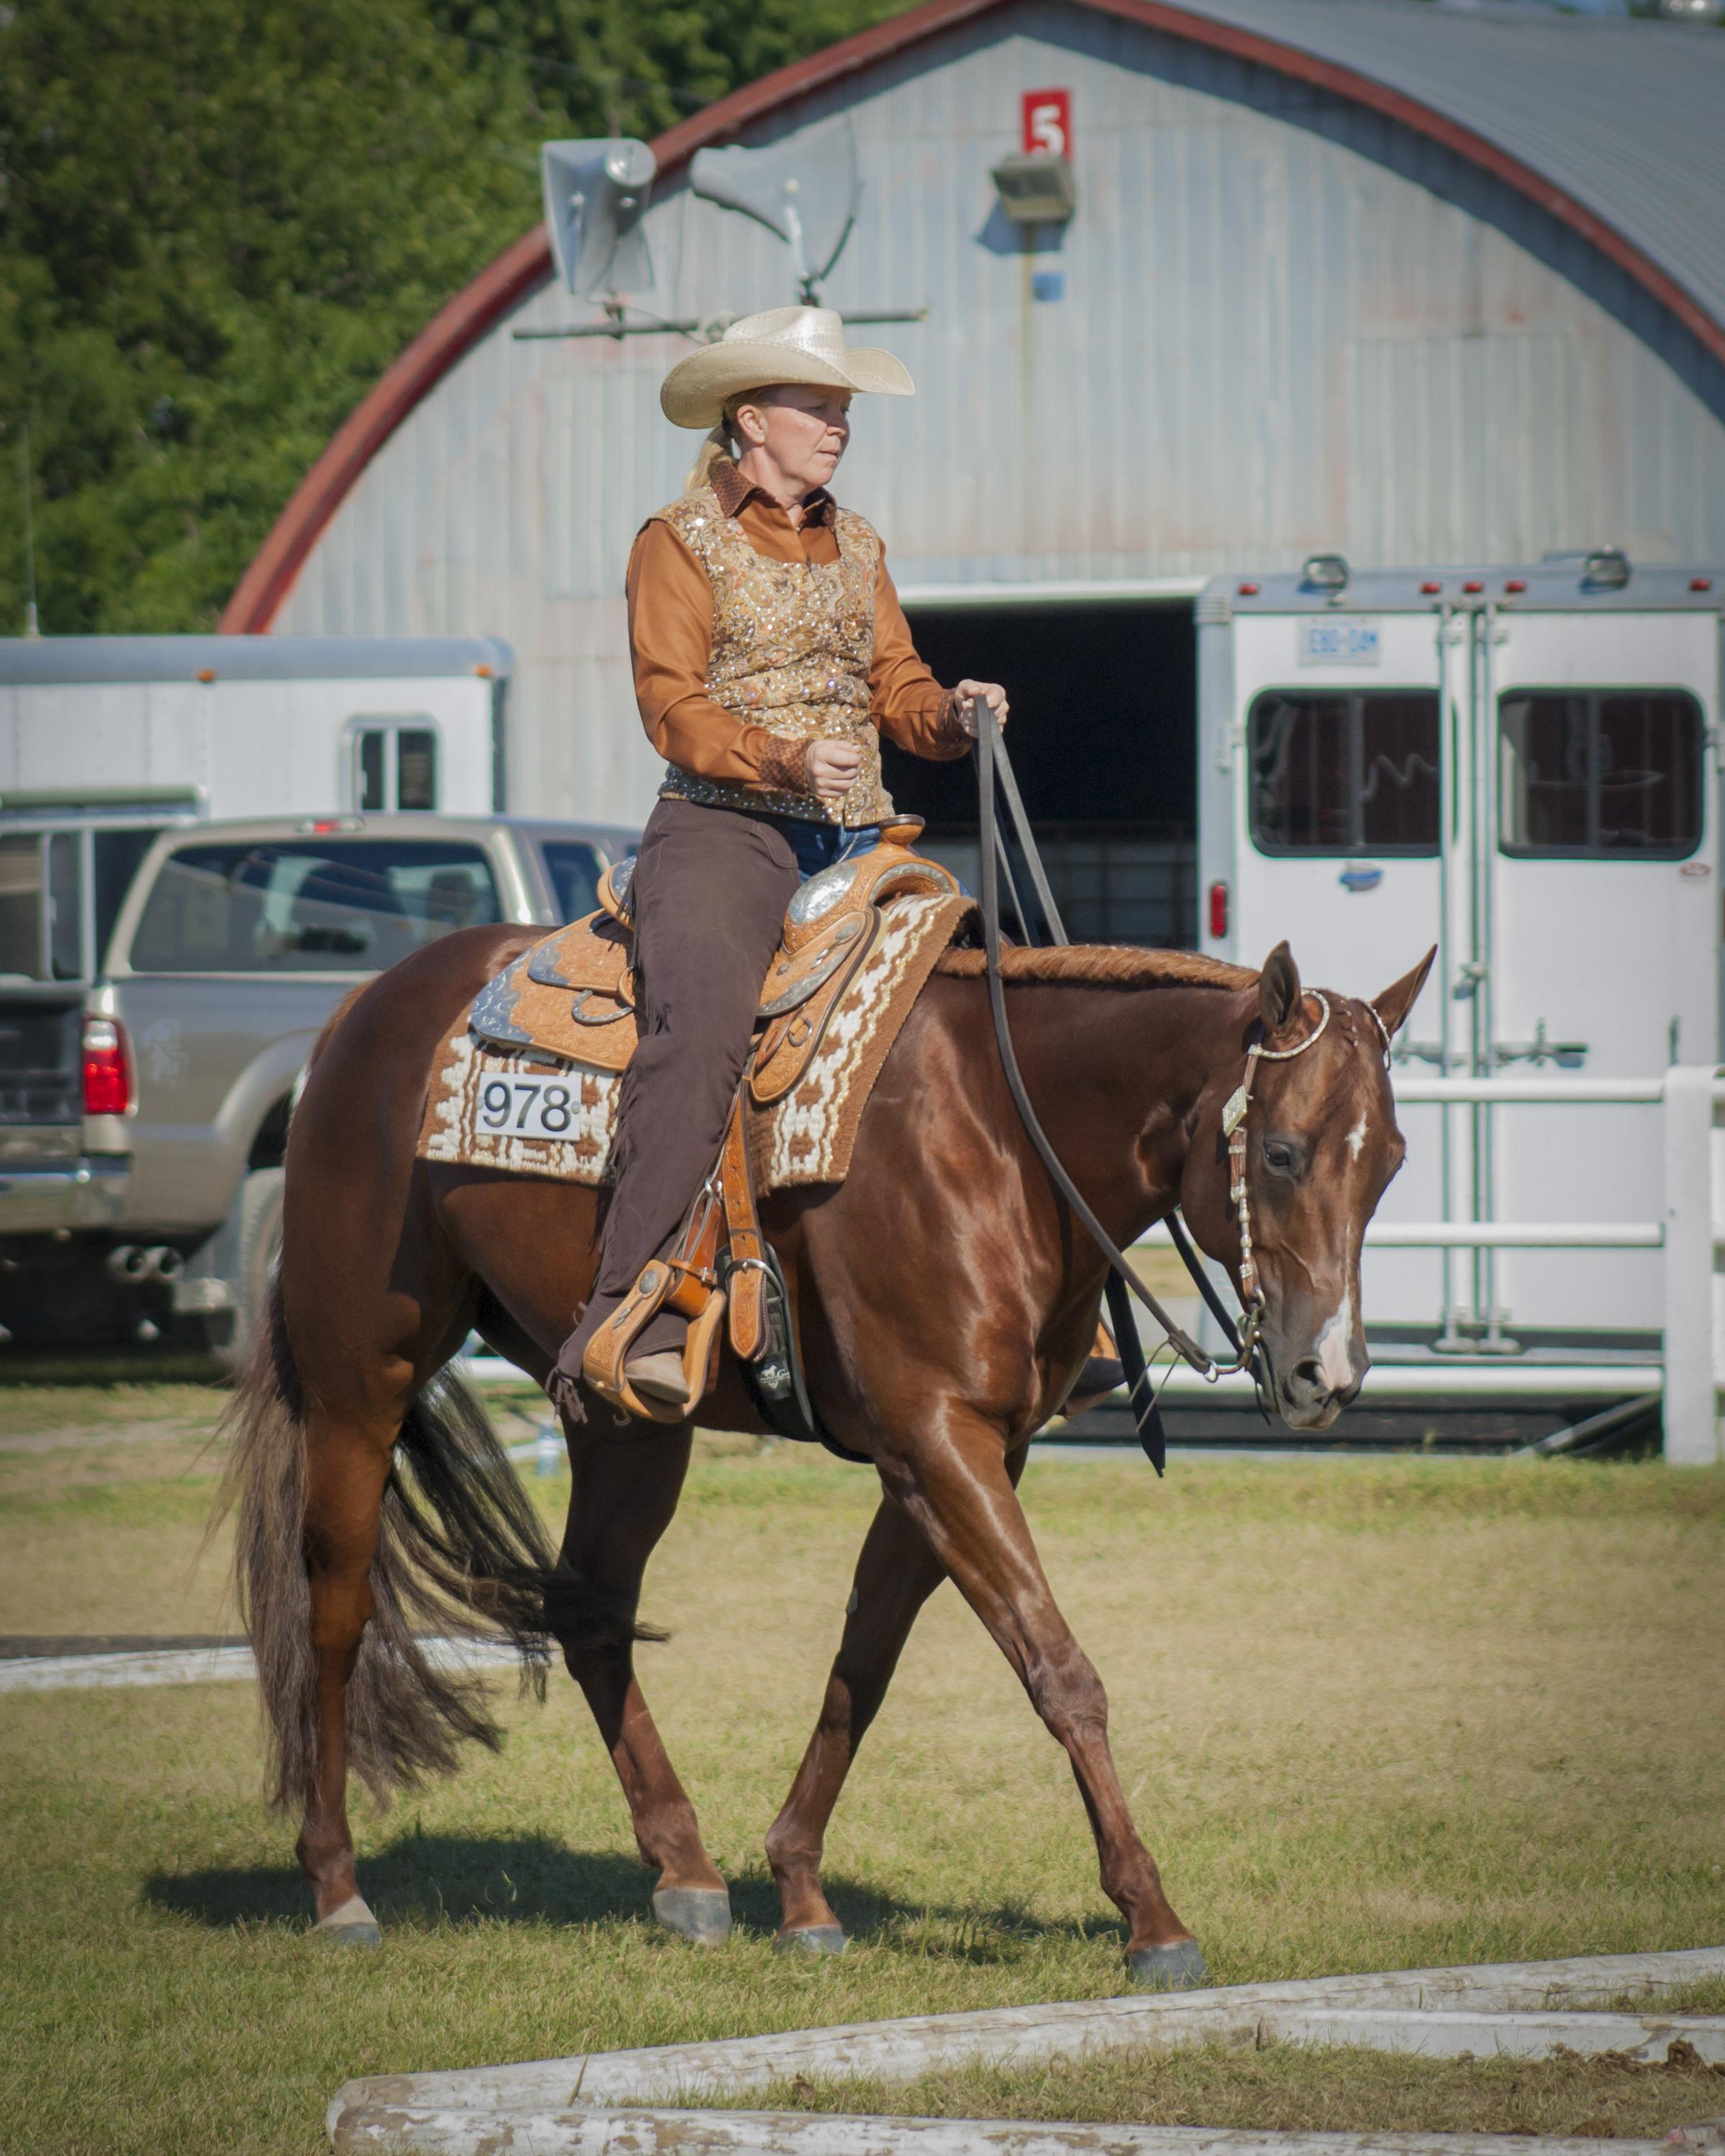 Le capitaine Karoles et Remember I'm Awesome (Lacy) participent dans la catégorie randonnée équestre – débutants à l'Eastern Ontario Quarter Horse Association, Summer Sizzler, le 30 juillet 2015 à Carp, en Ontario. Photo par : Natashya Bay Designs